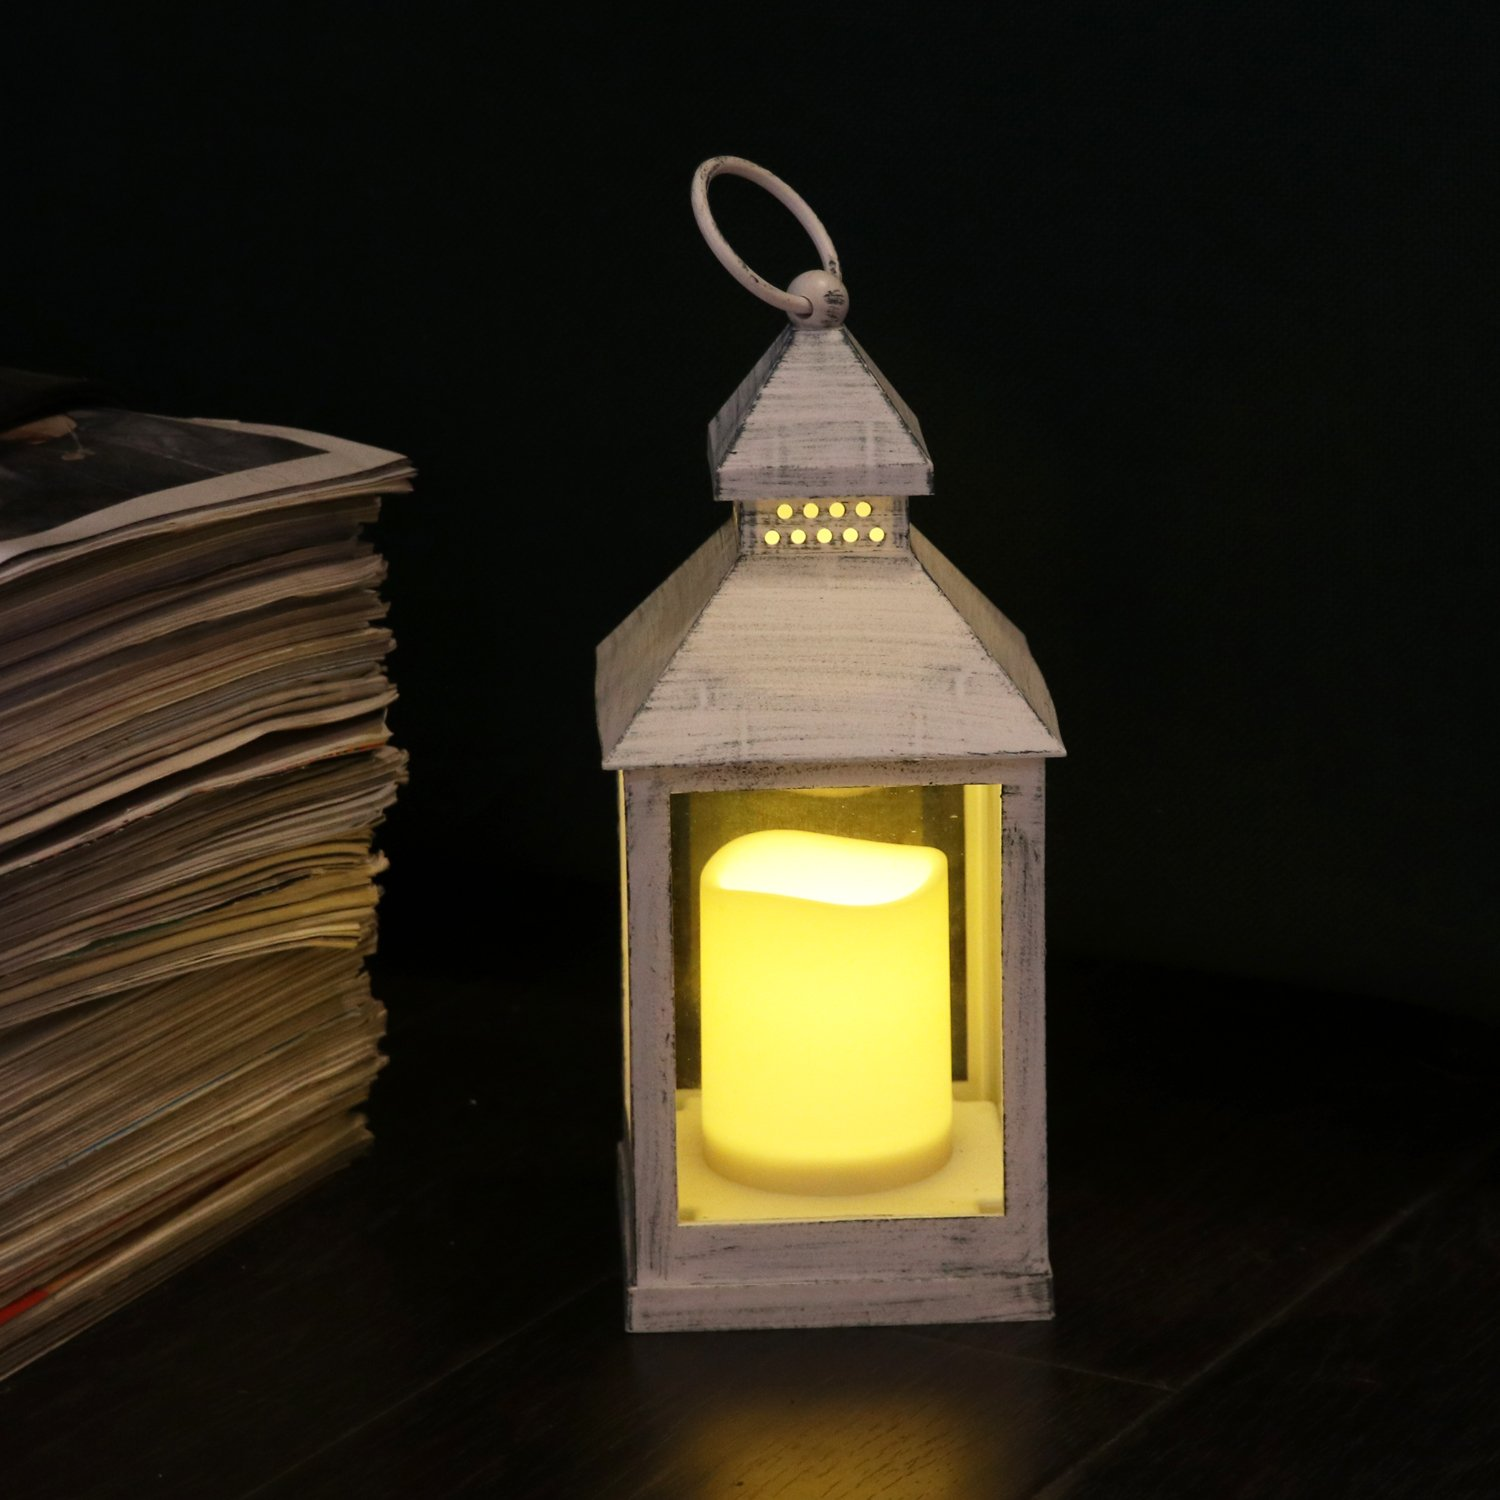 Antique White Lantern with Led Candle for Wedding, Battery Operated Garden Lantern for Indoor and Out Door Use - H24 Centimeter Rhytsing TS1013